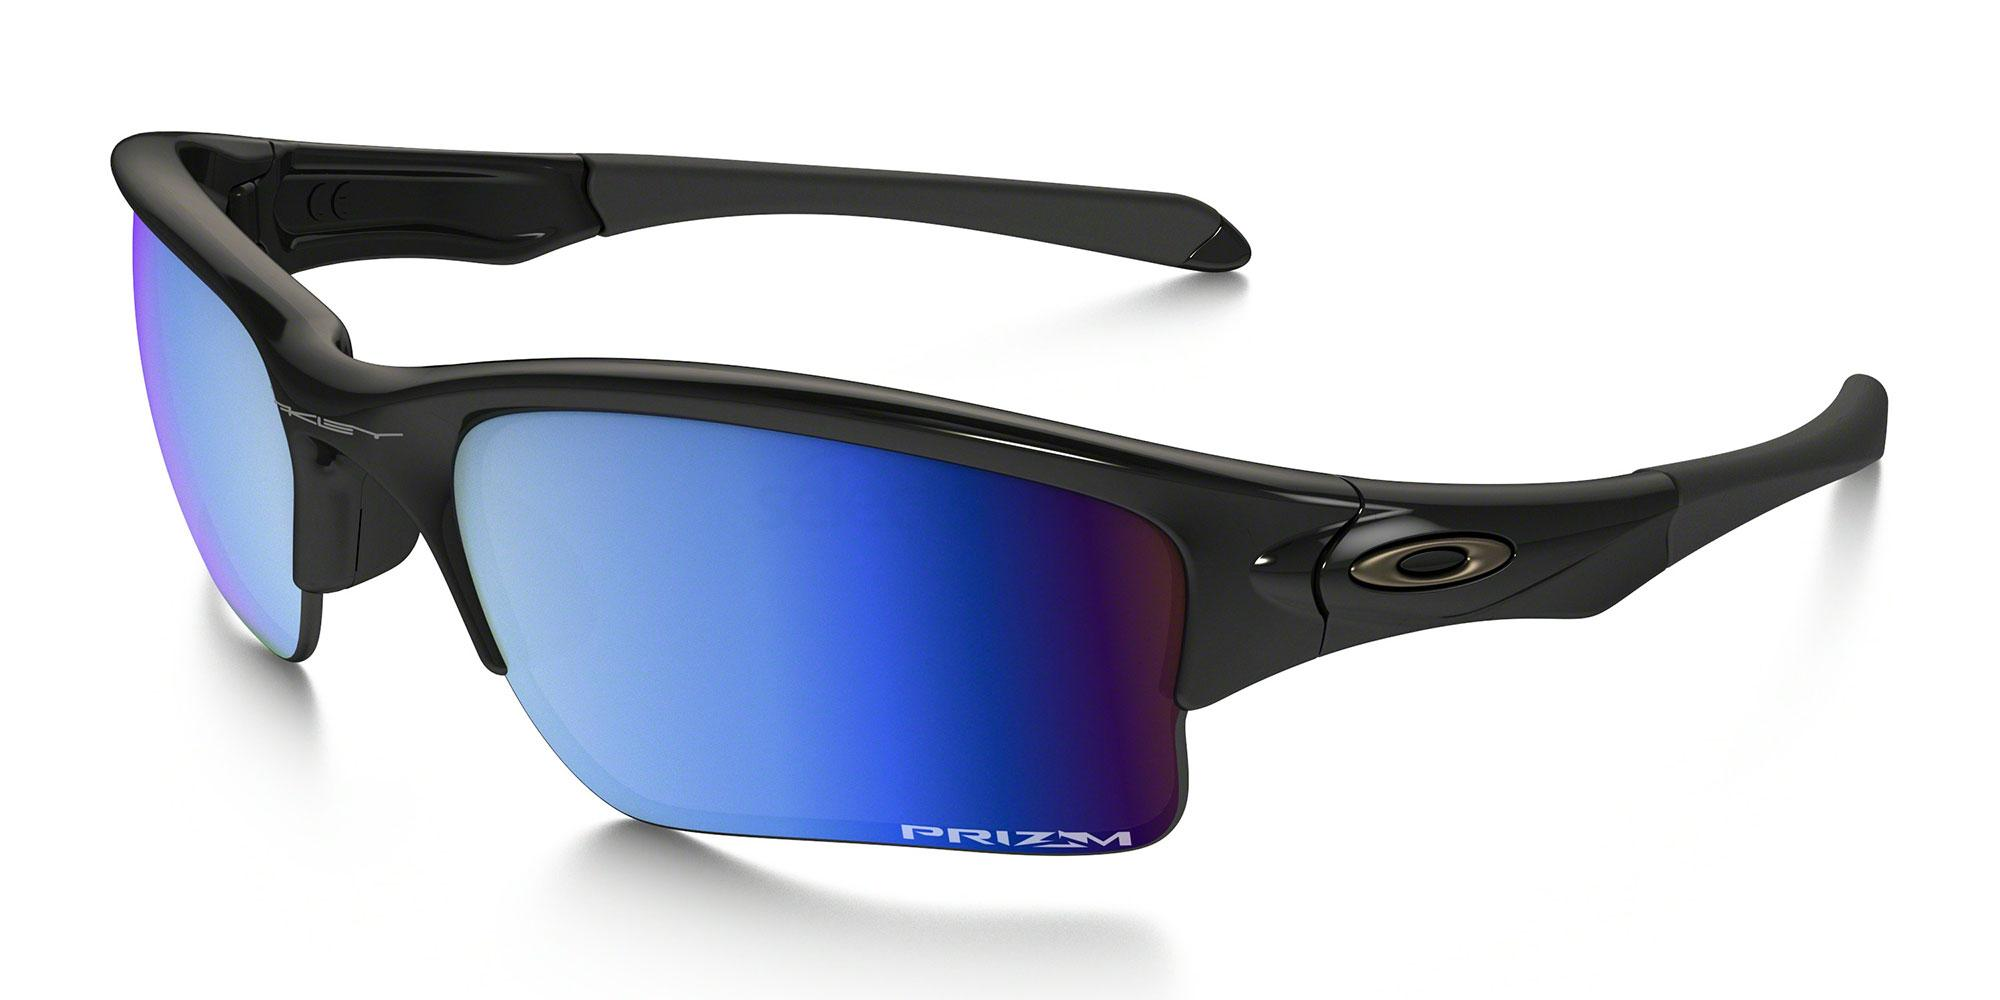 920016 OO9200 QUARTER JACKET POLARIZED Sunglasses, Oakley